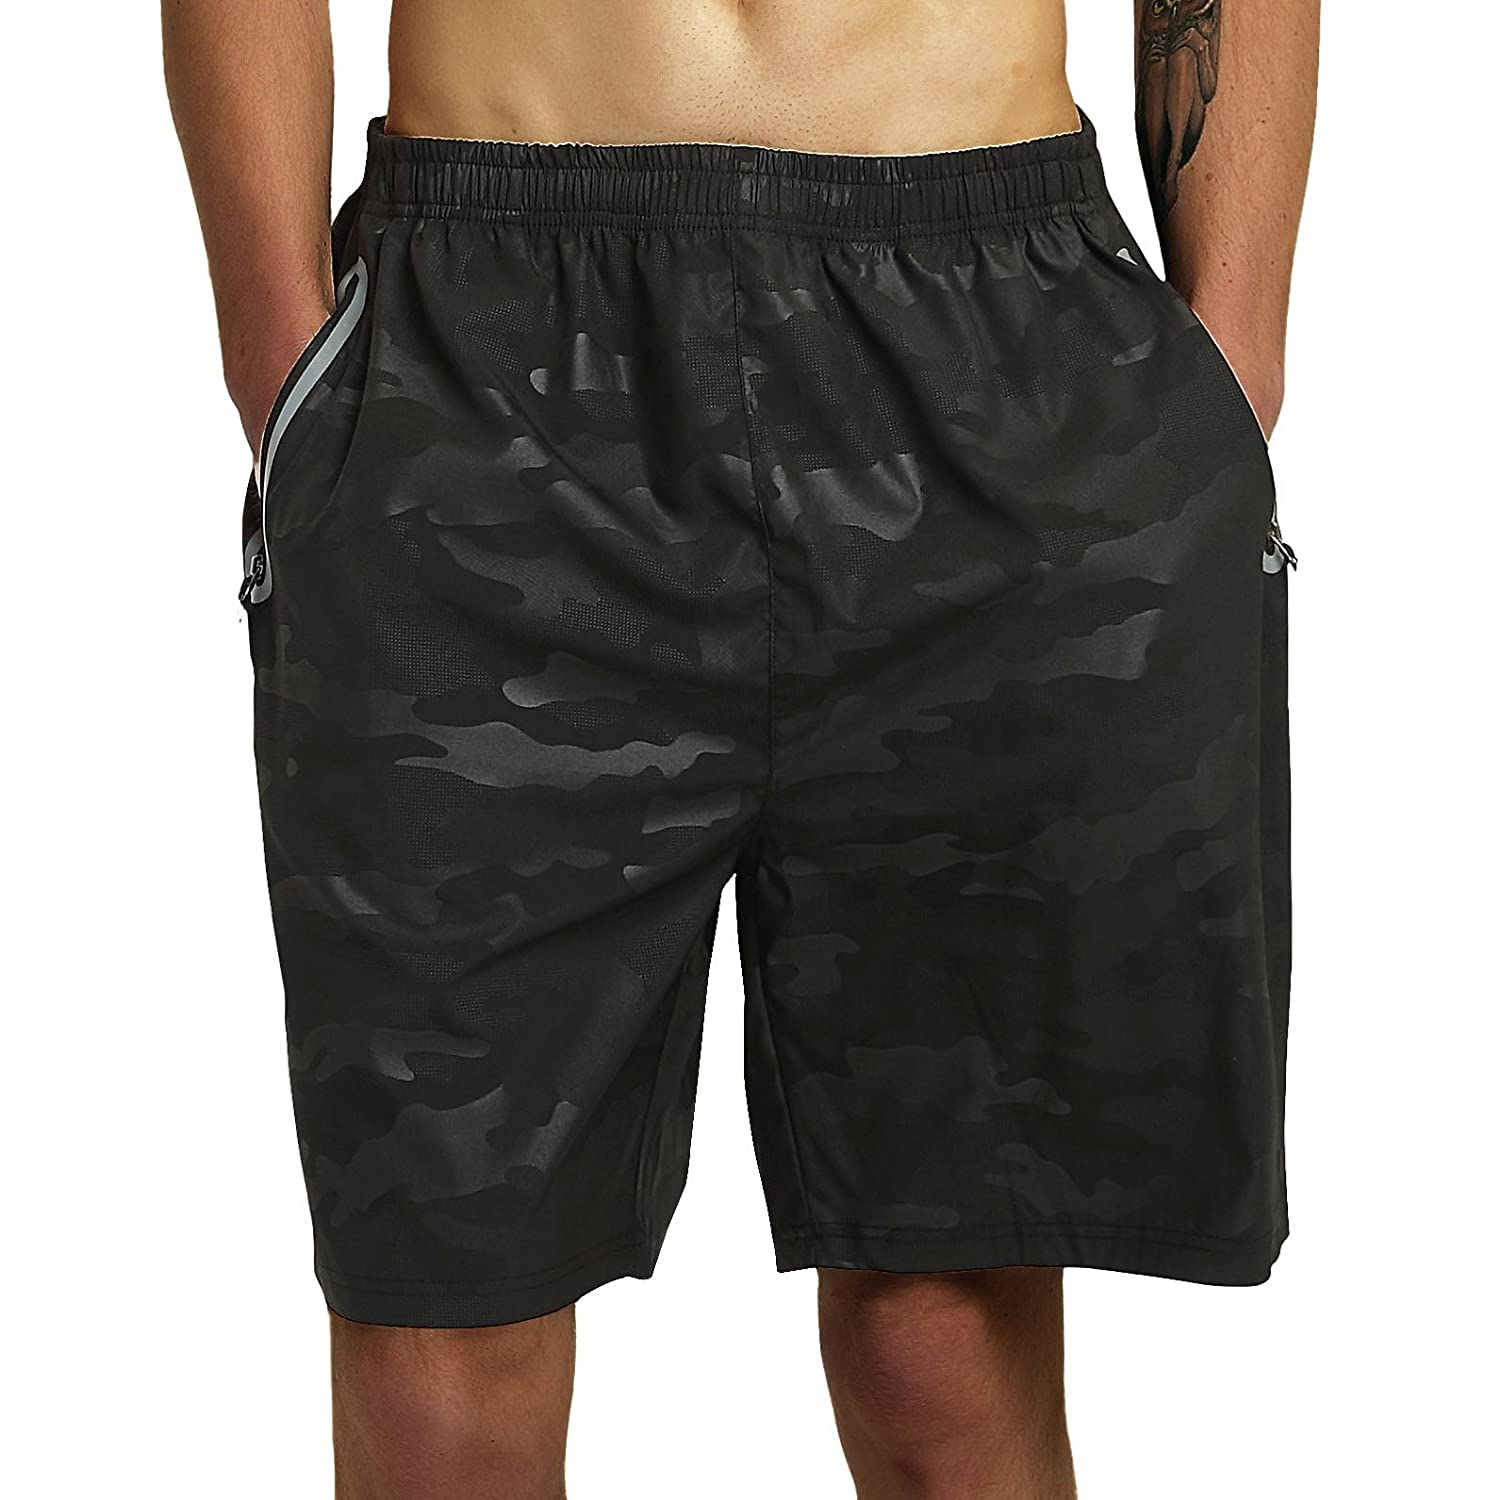 Gititlys Mens Gym Shorts for Men Elastic Waist - Quick Dry Stretchable for Running, Training, Workout Swim